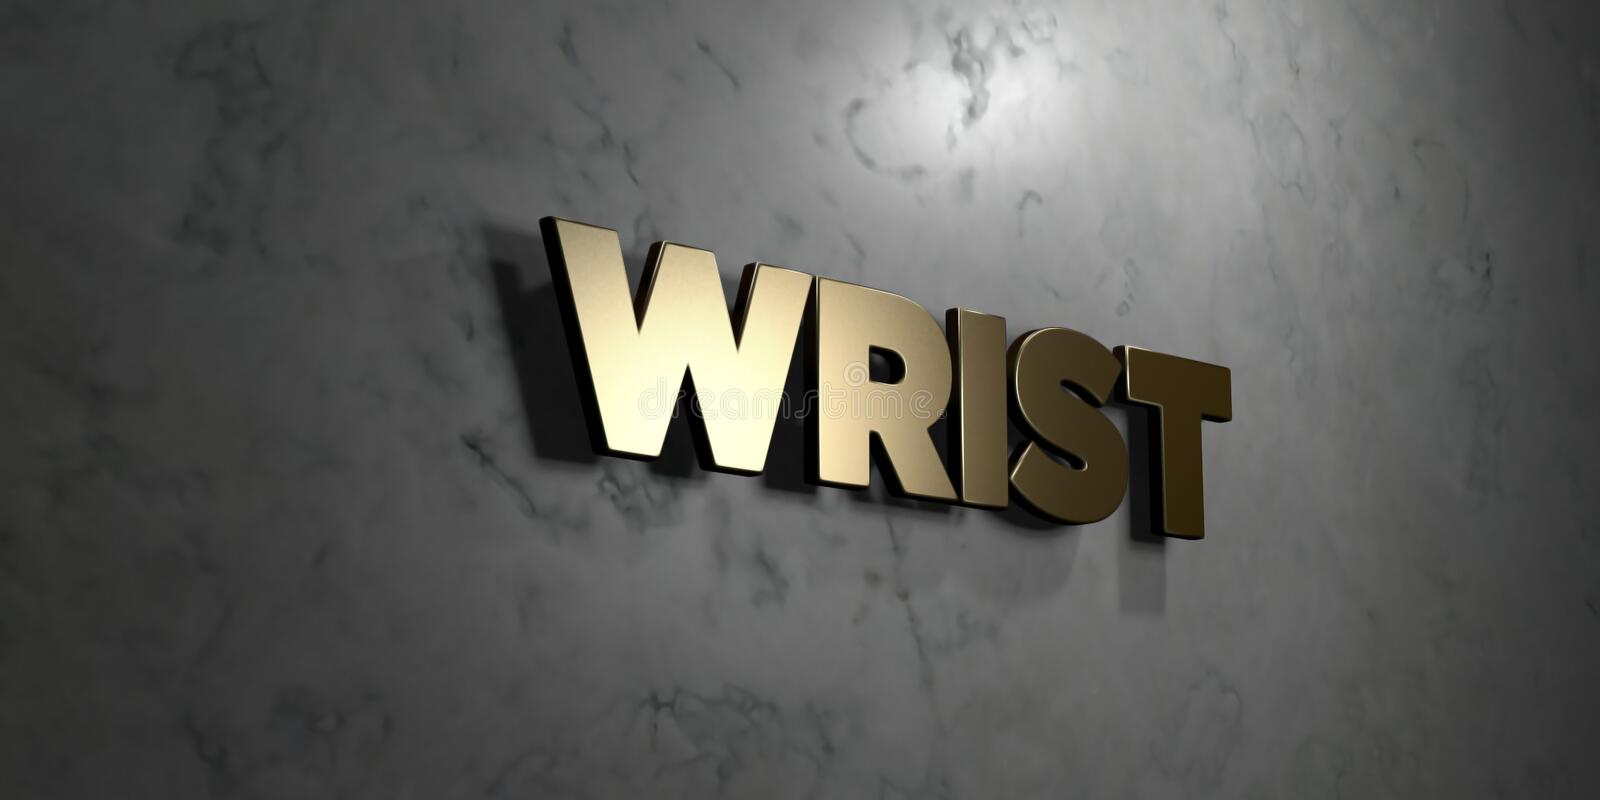 Wrist - Gold sign mounted on glossy marble wall - 3D rendered royalty free stock illustration royalty free illustration